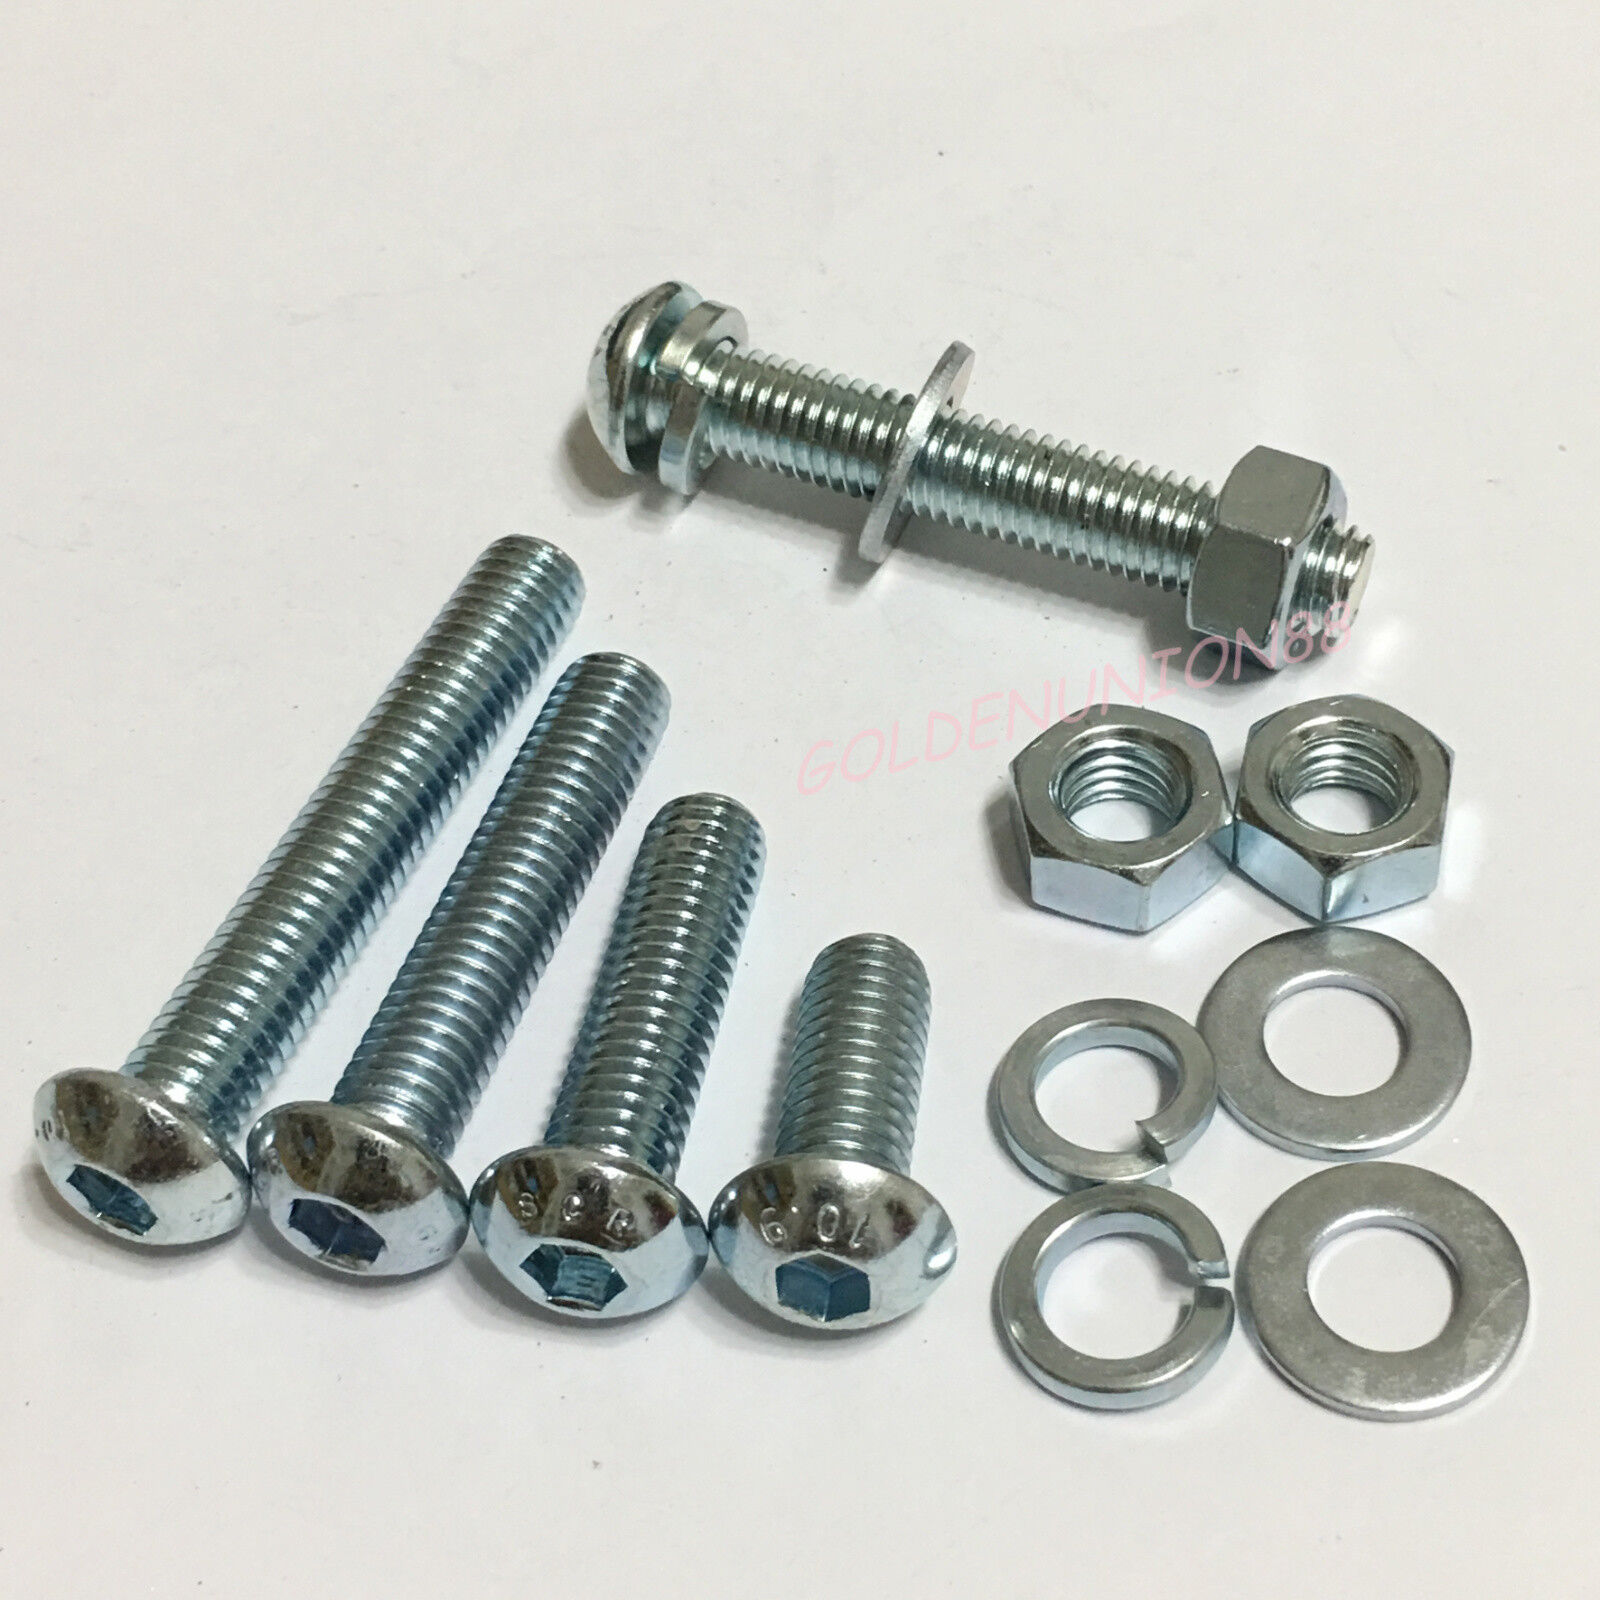 M6x16 Zinc Plated Socket Cap Allen Bolt with nuts x 10